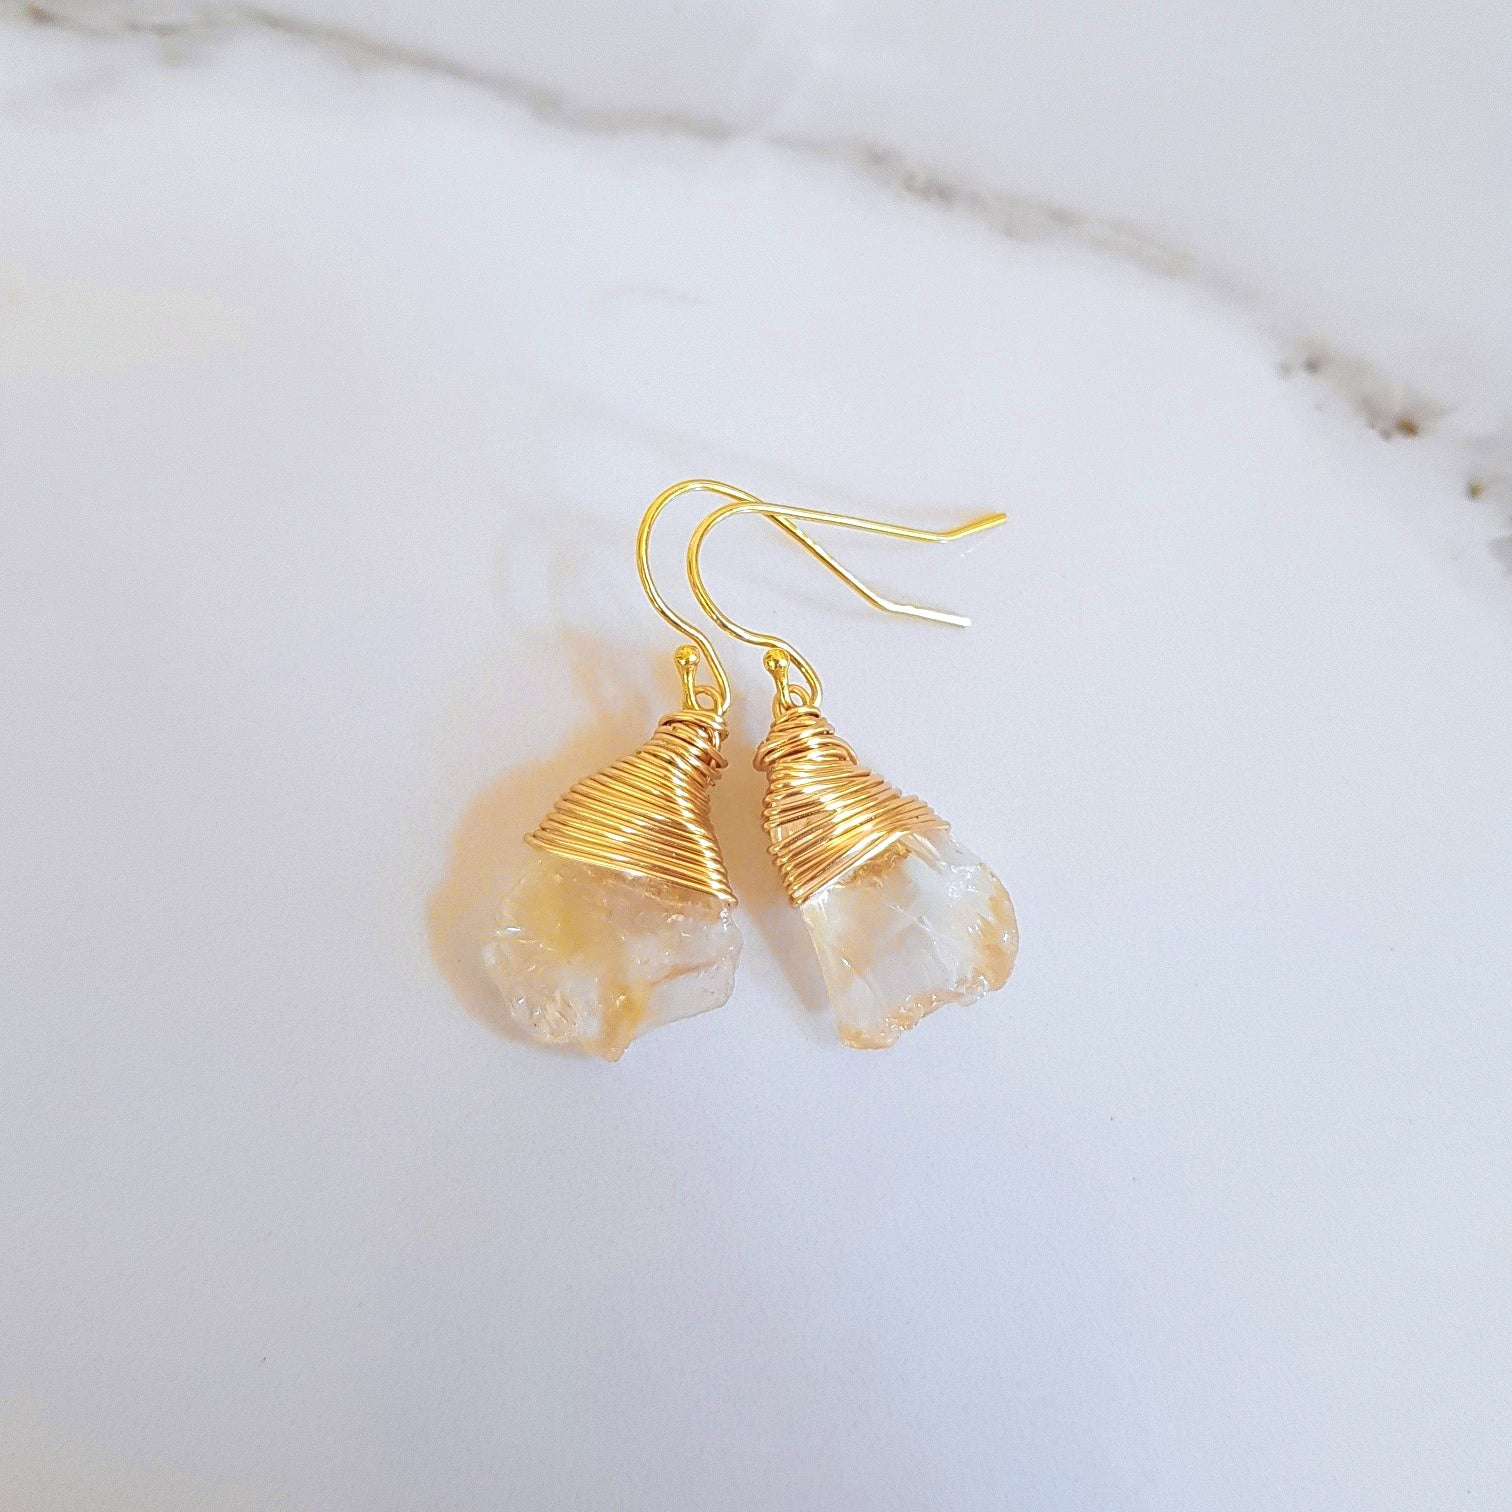 Haze Earrings - Citrine